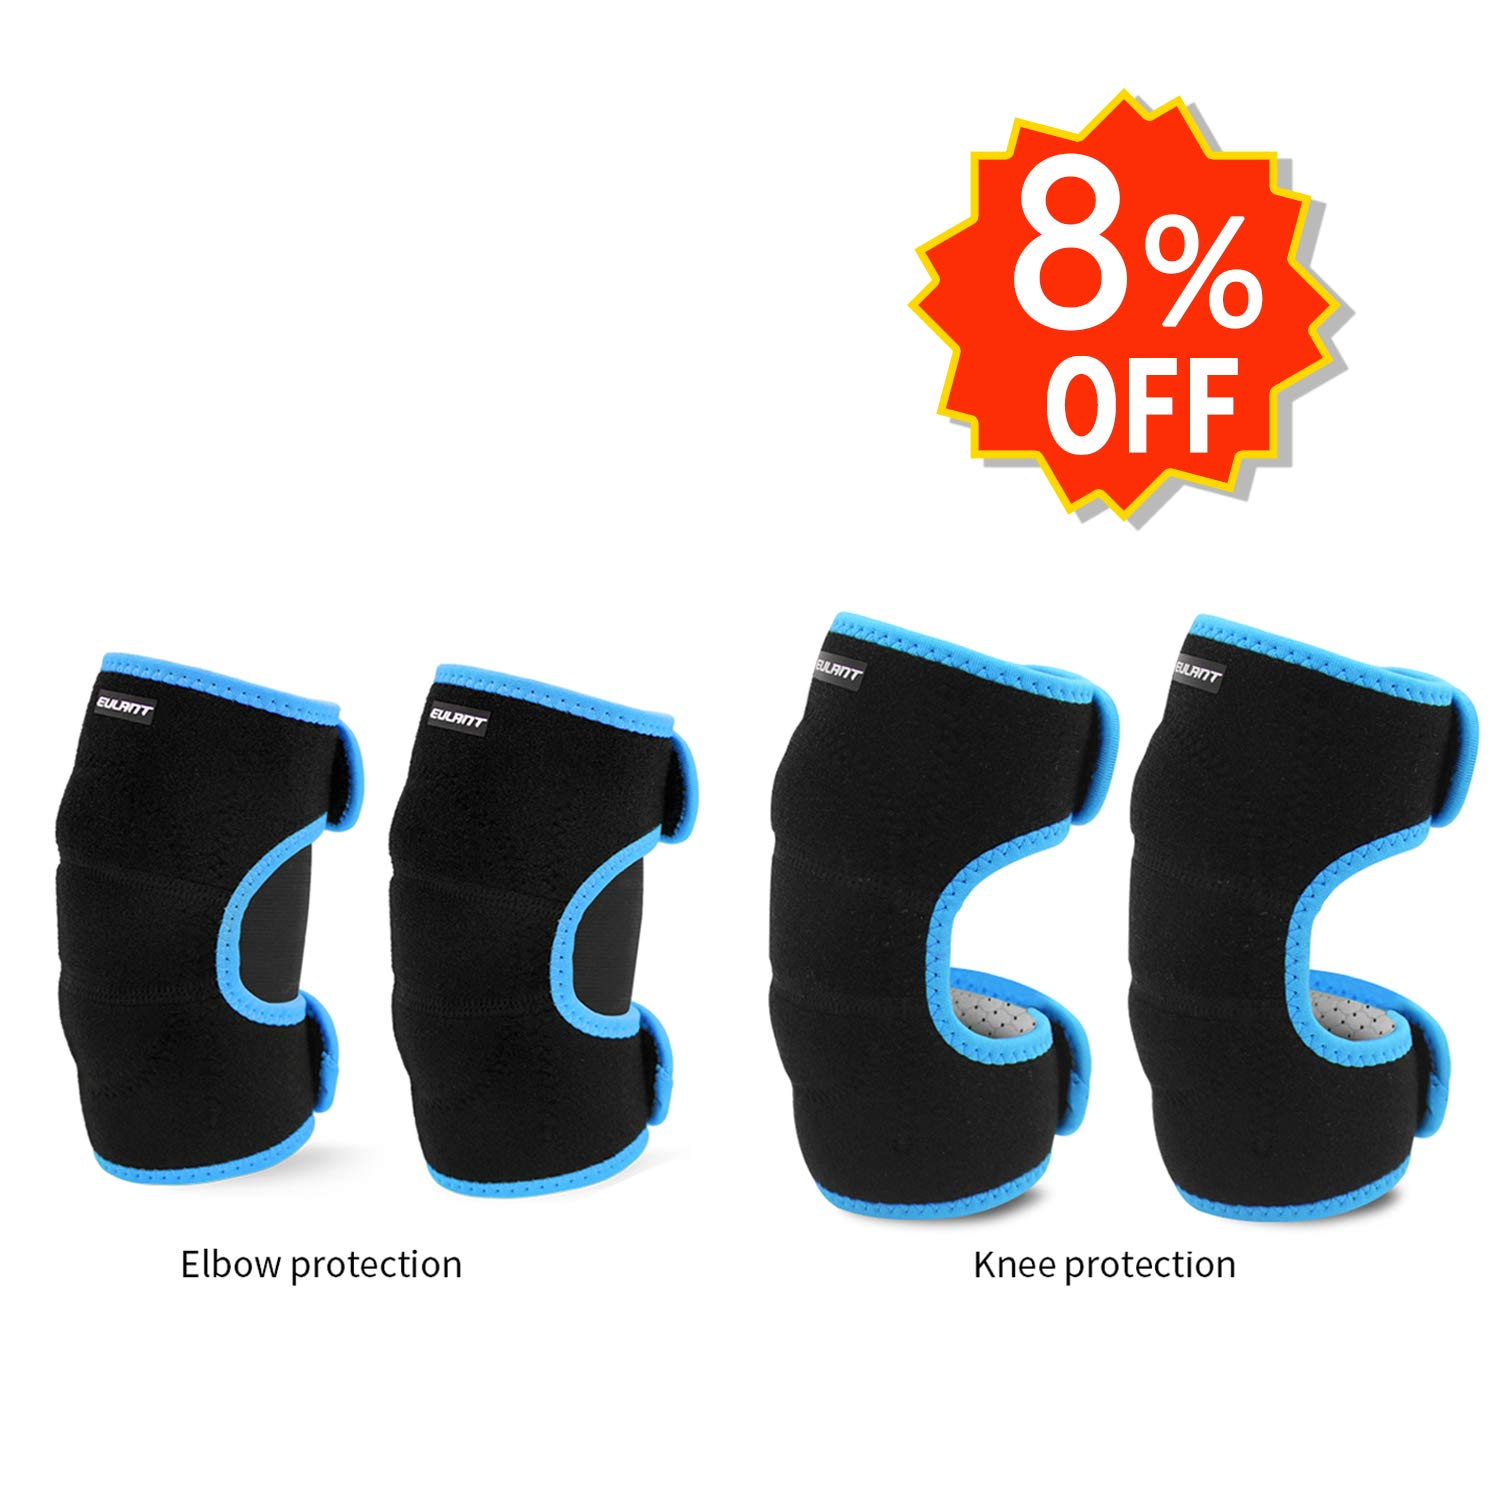 EULANT Sports Knee and Elbow Pads for Kids, Adjustable Protective Set for Biking Cycling Bicycle Riding Rollerblading Skating Skateboarding